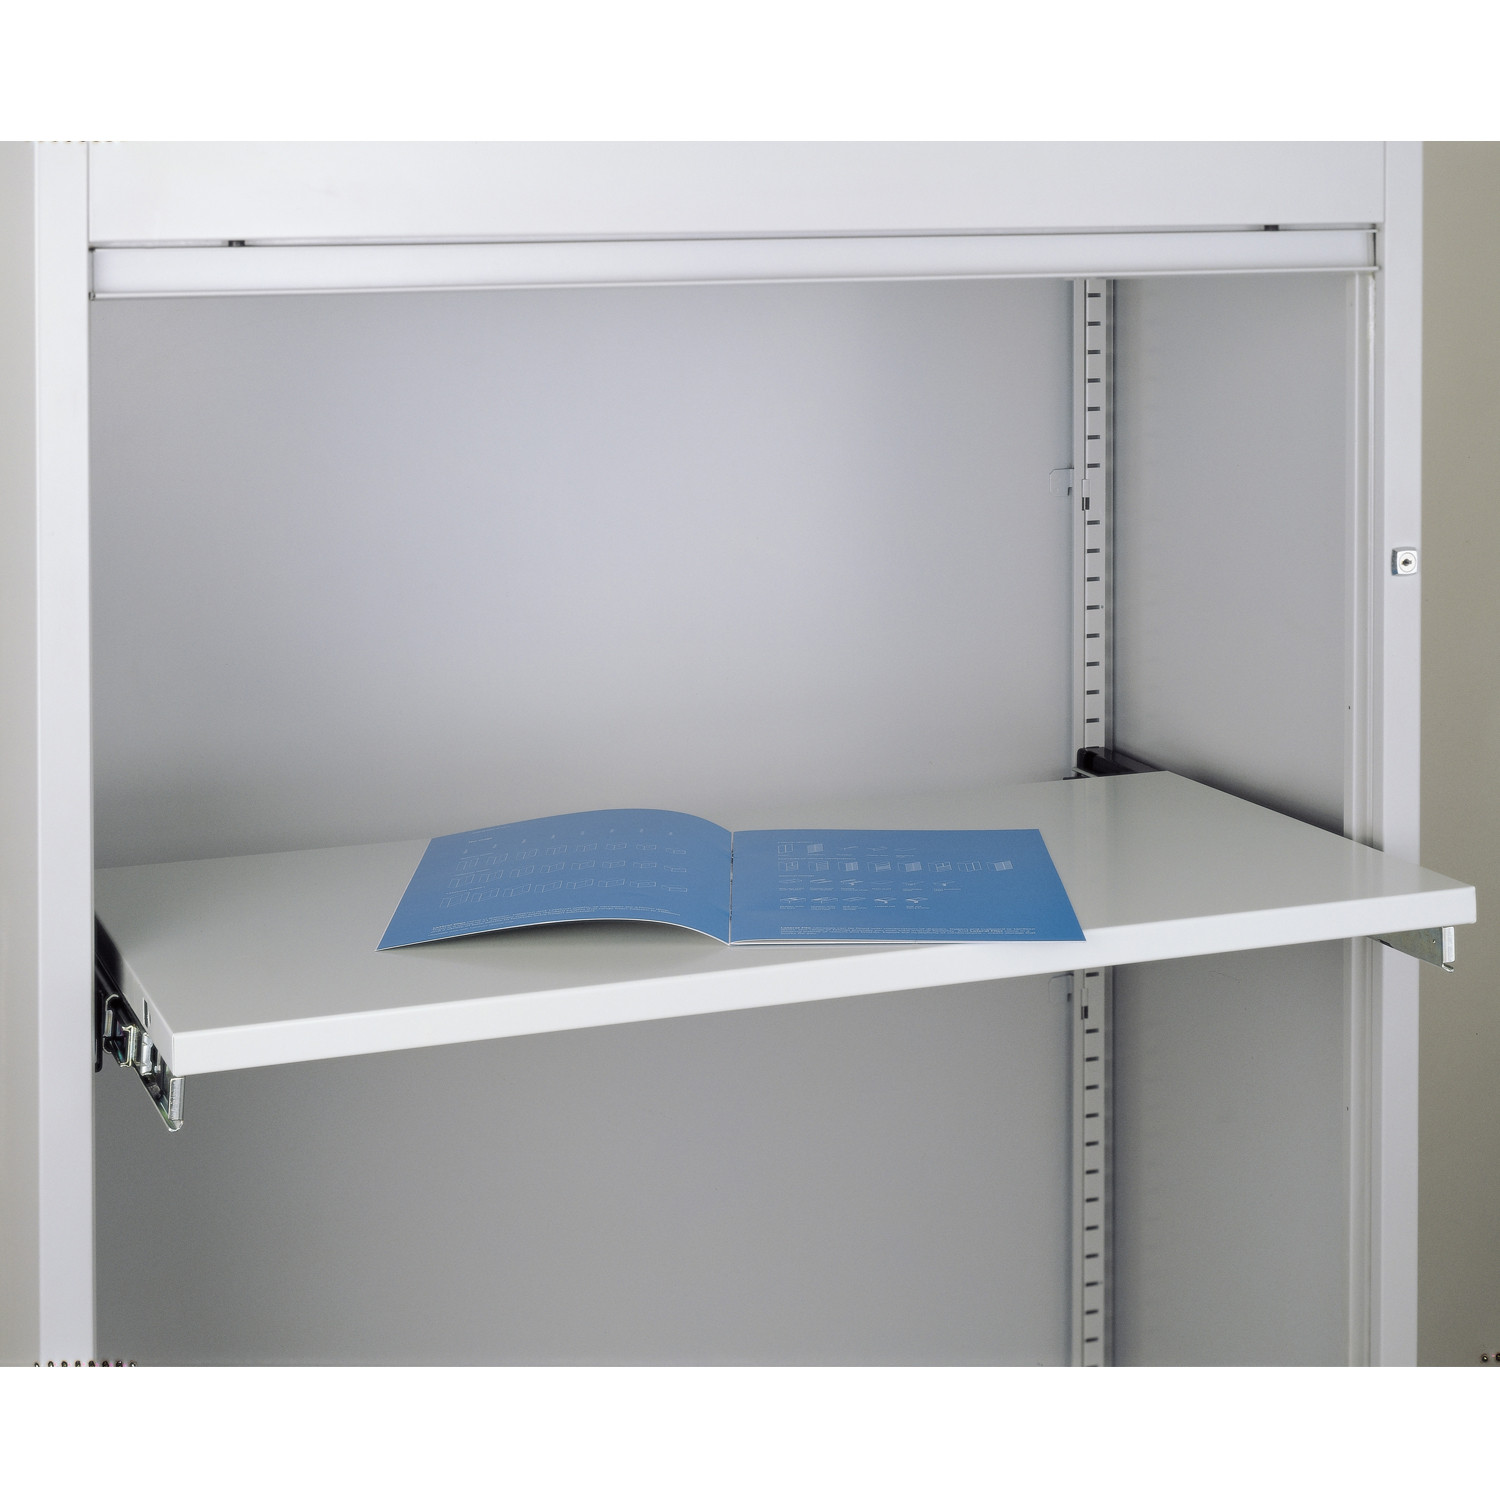 Cupboard Roll-out Shelf